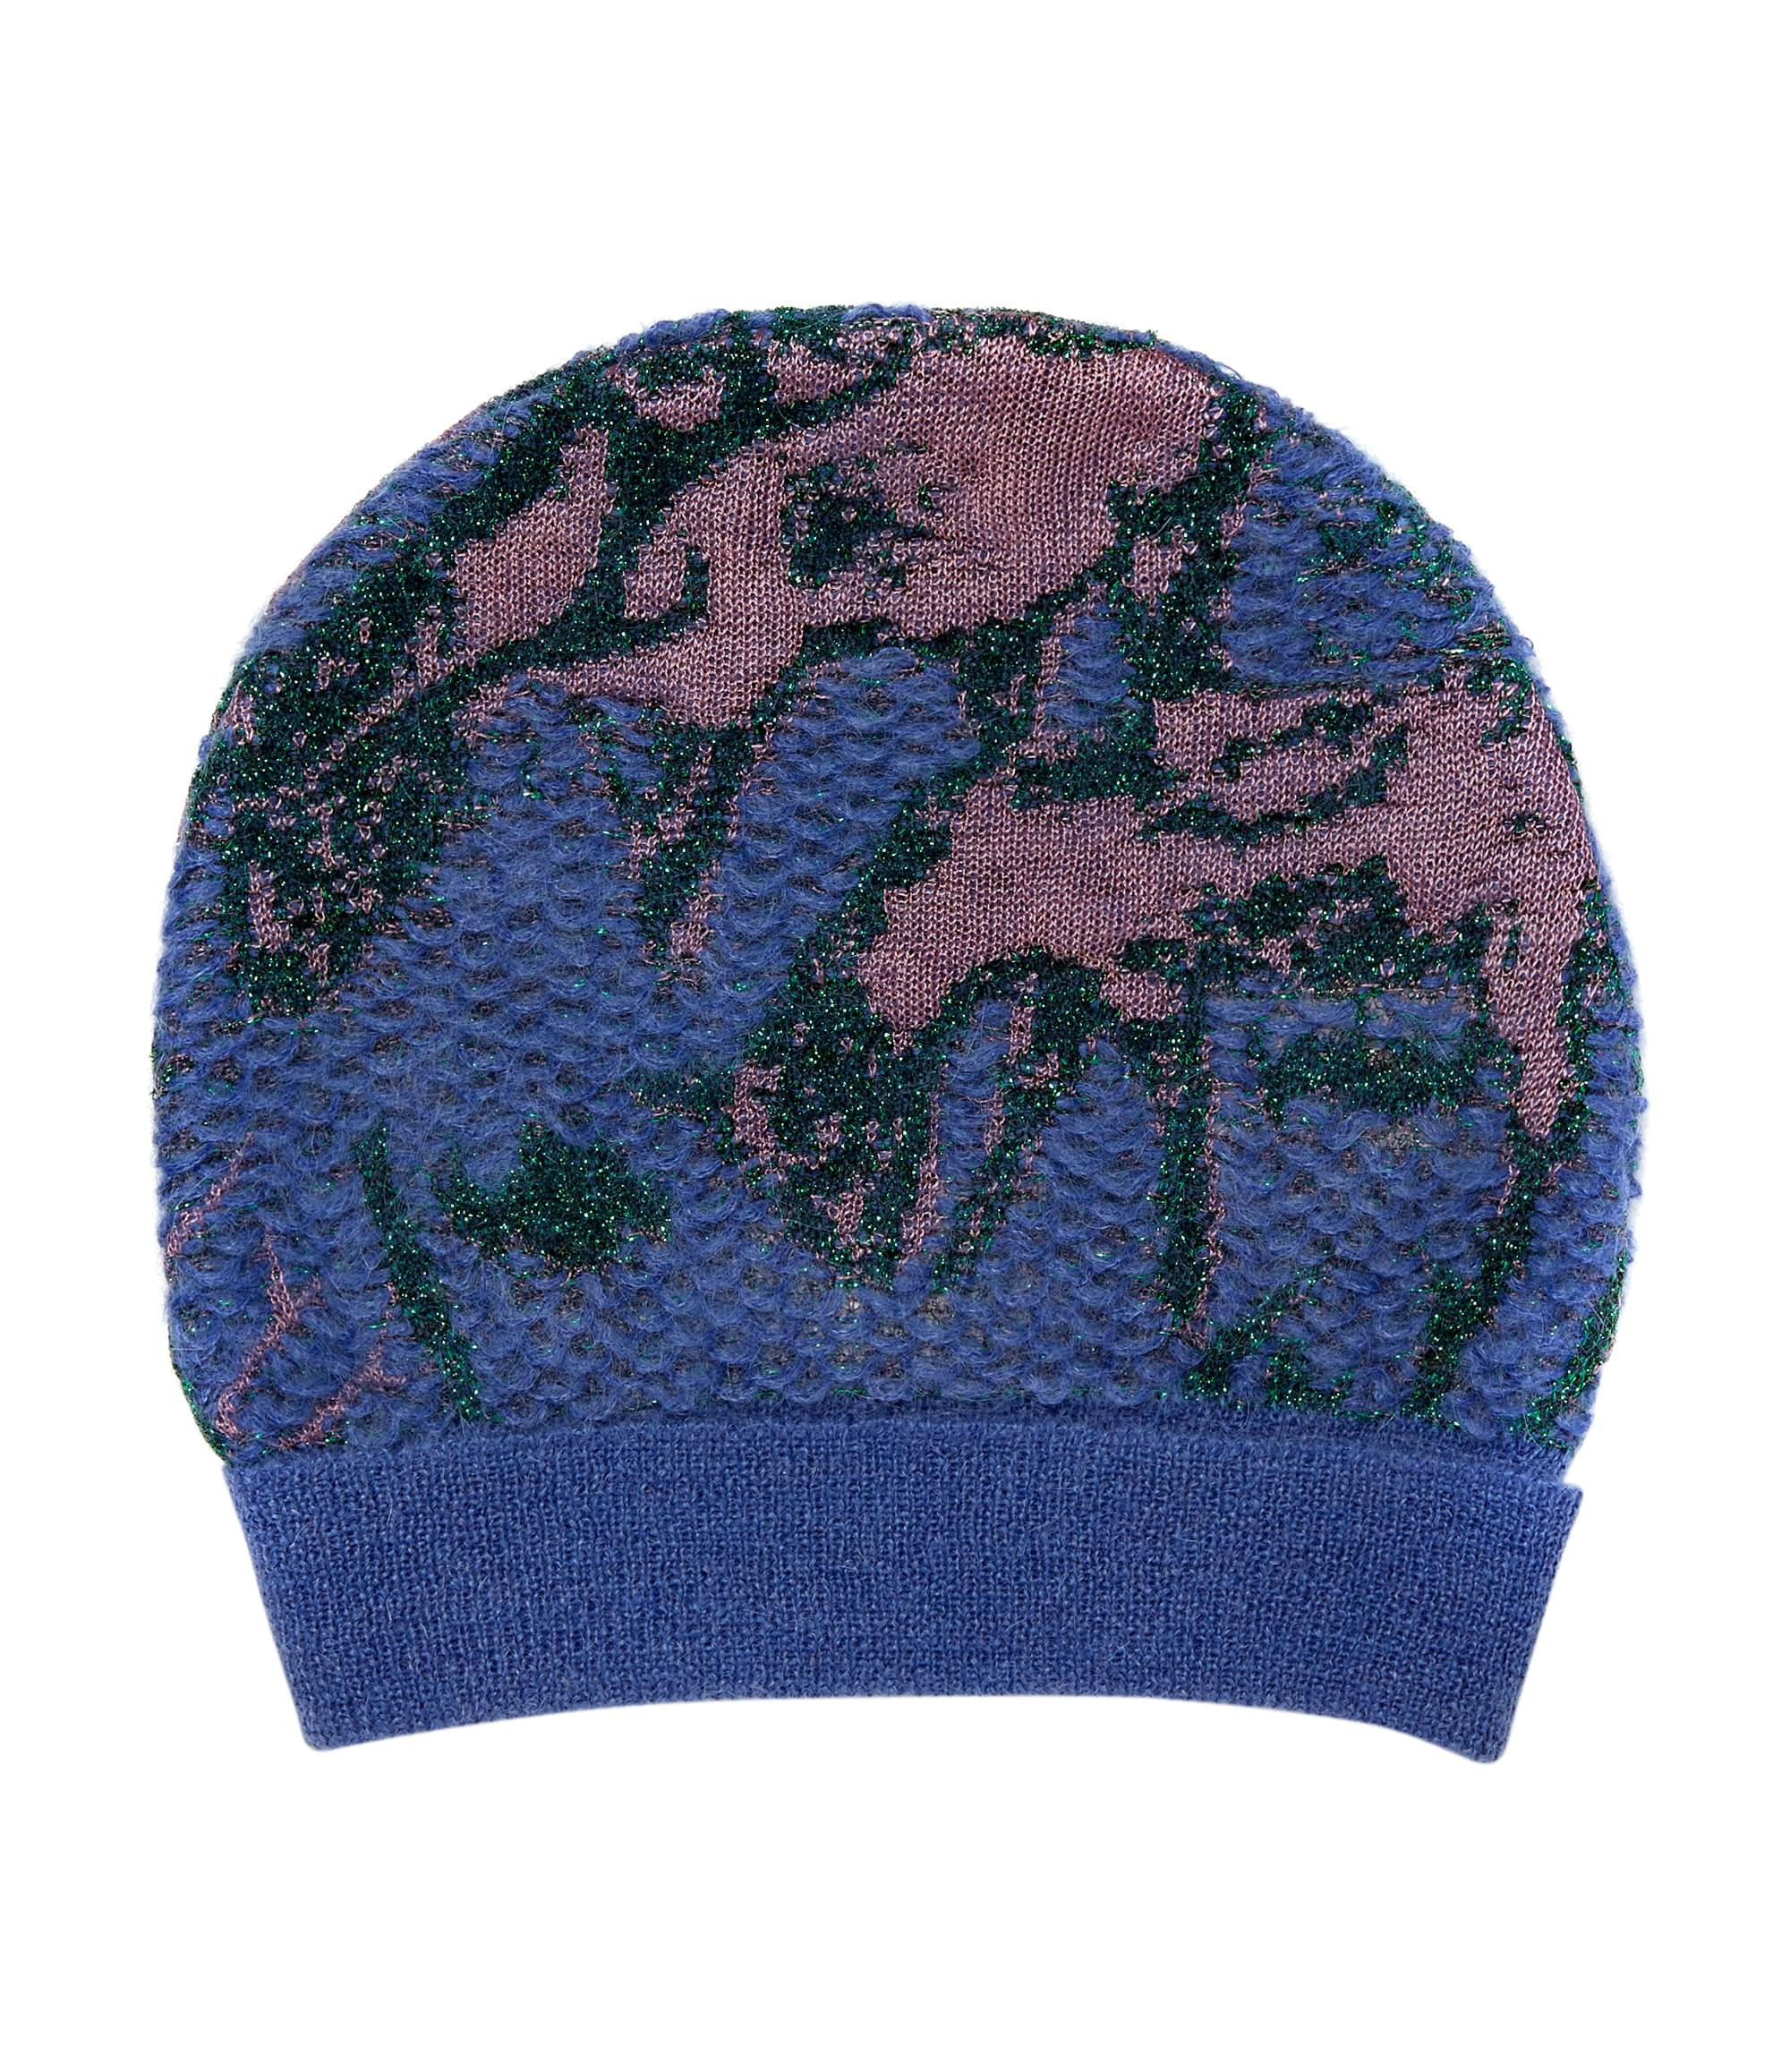 Vivienne Westwood Knitted Purple Deer Beanie